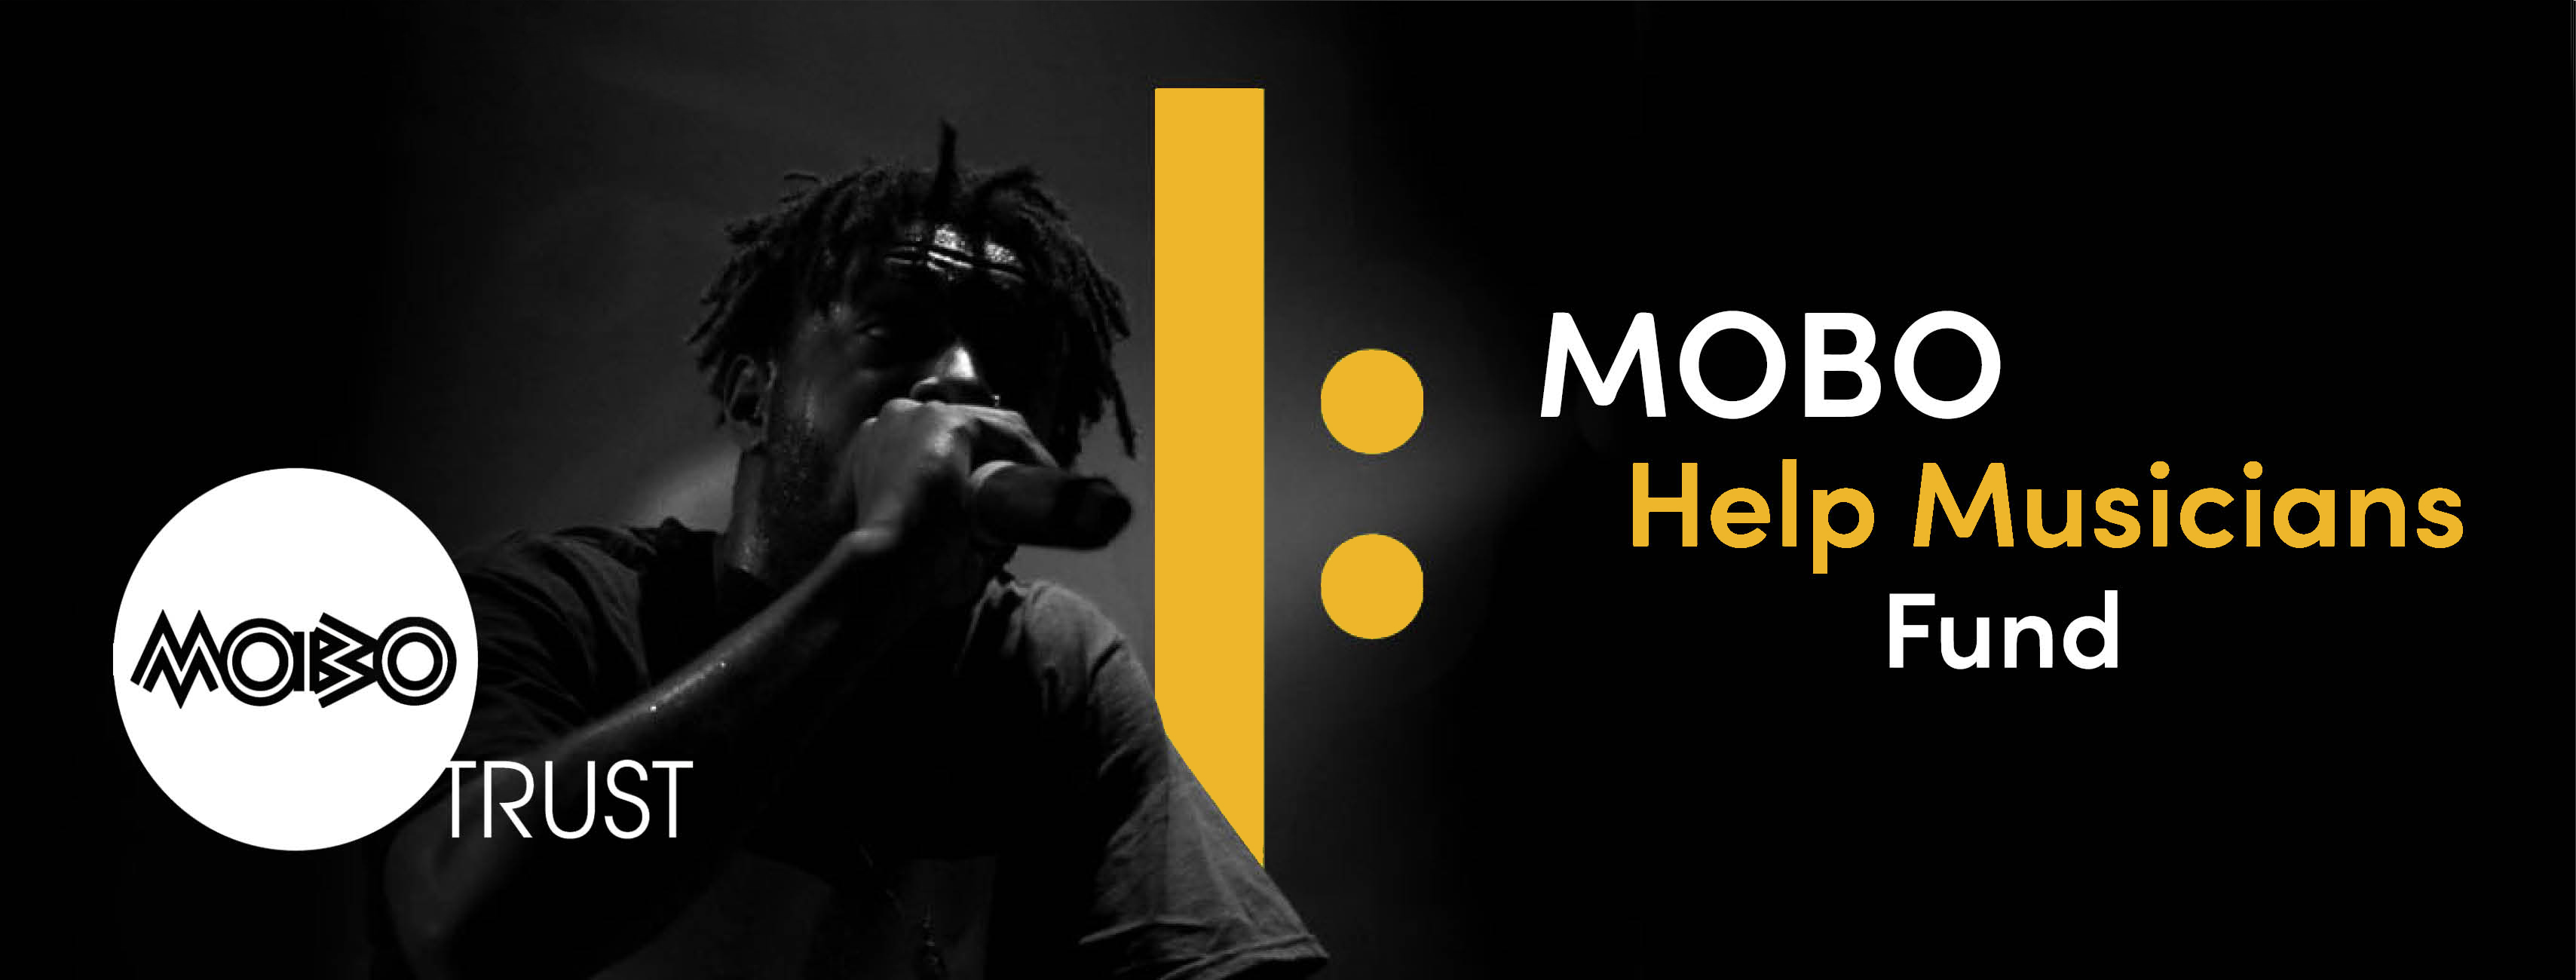 Creative Programme - CO - Mobo Help Musicians Fund (O)